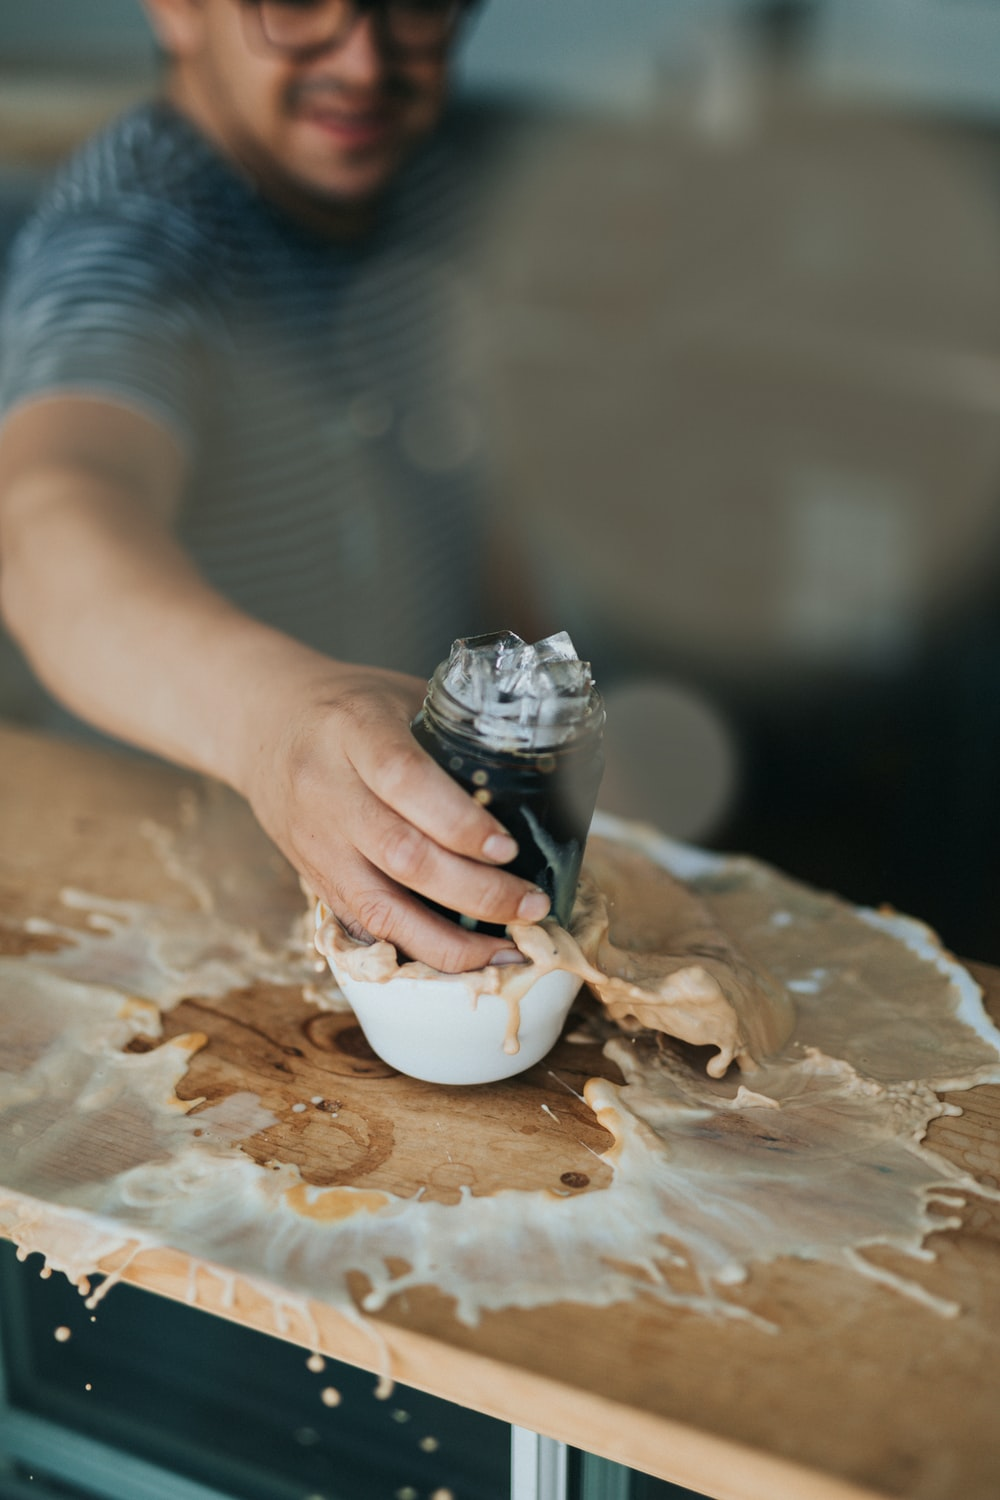 man holding clear glass jar putting on white ceramic bowl on brown wooden table